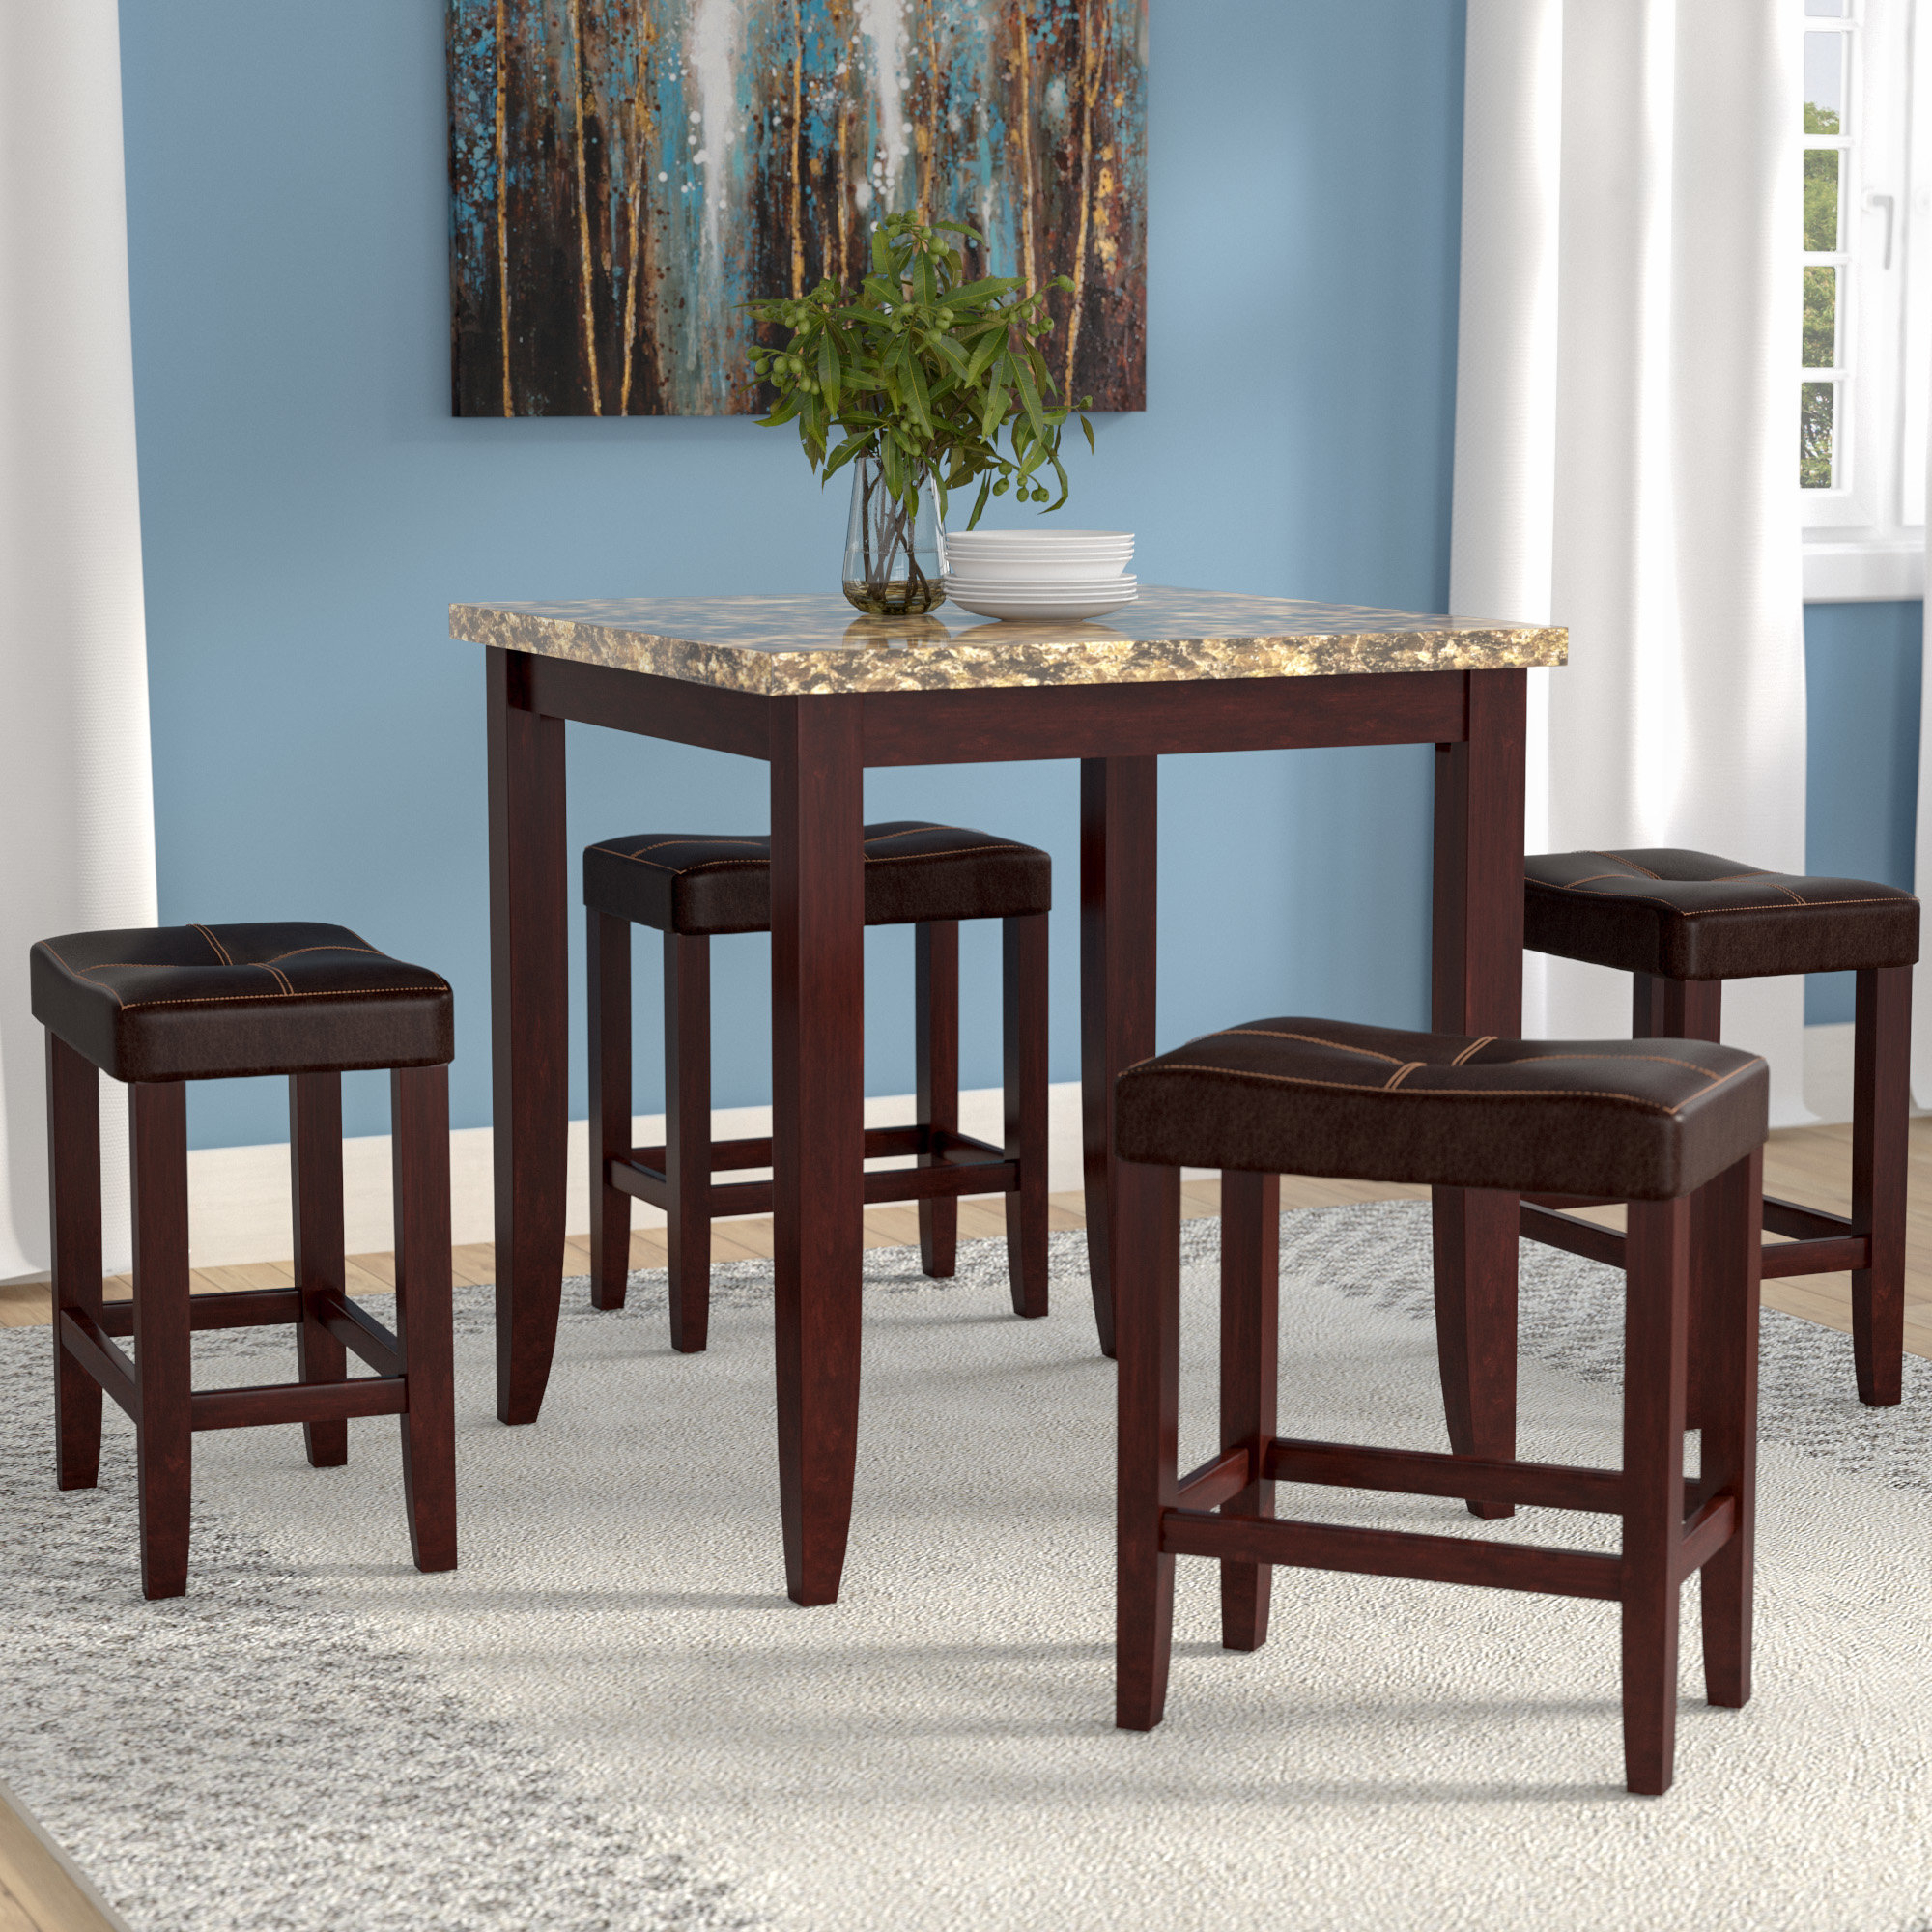 Latitude Run Dejean 5 Piece Counter Height Dining Set Inside 2018 Moorehead 3 Piece Counter Height Dining Sets (View 8 of 20)